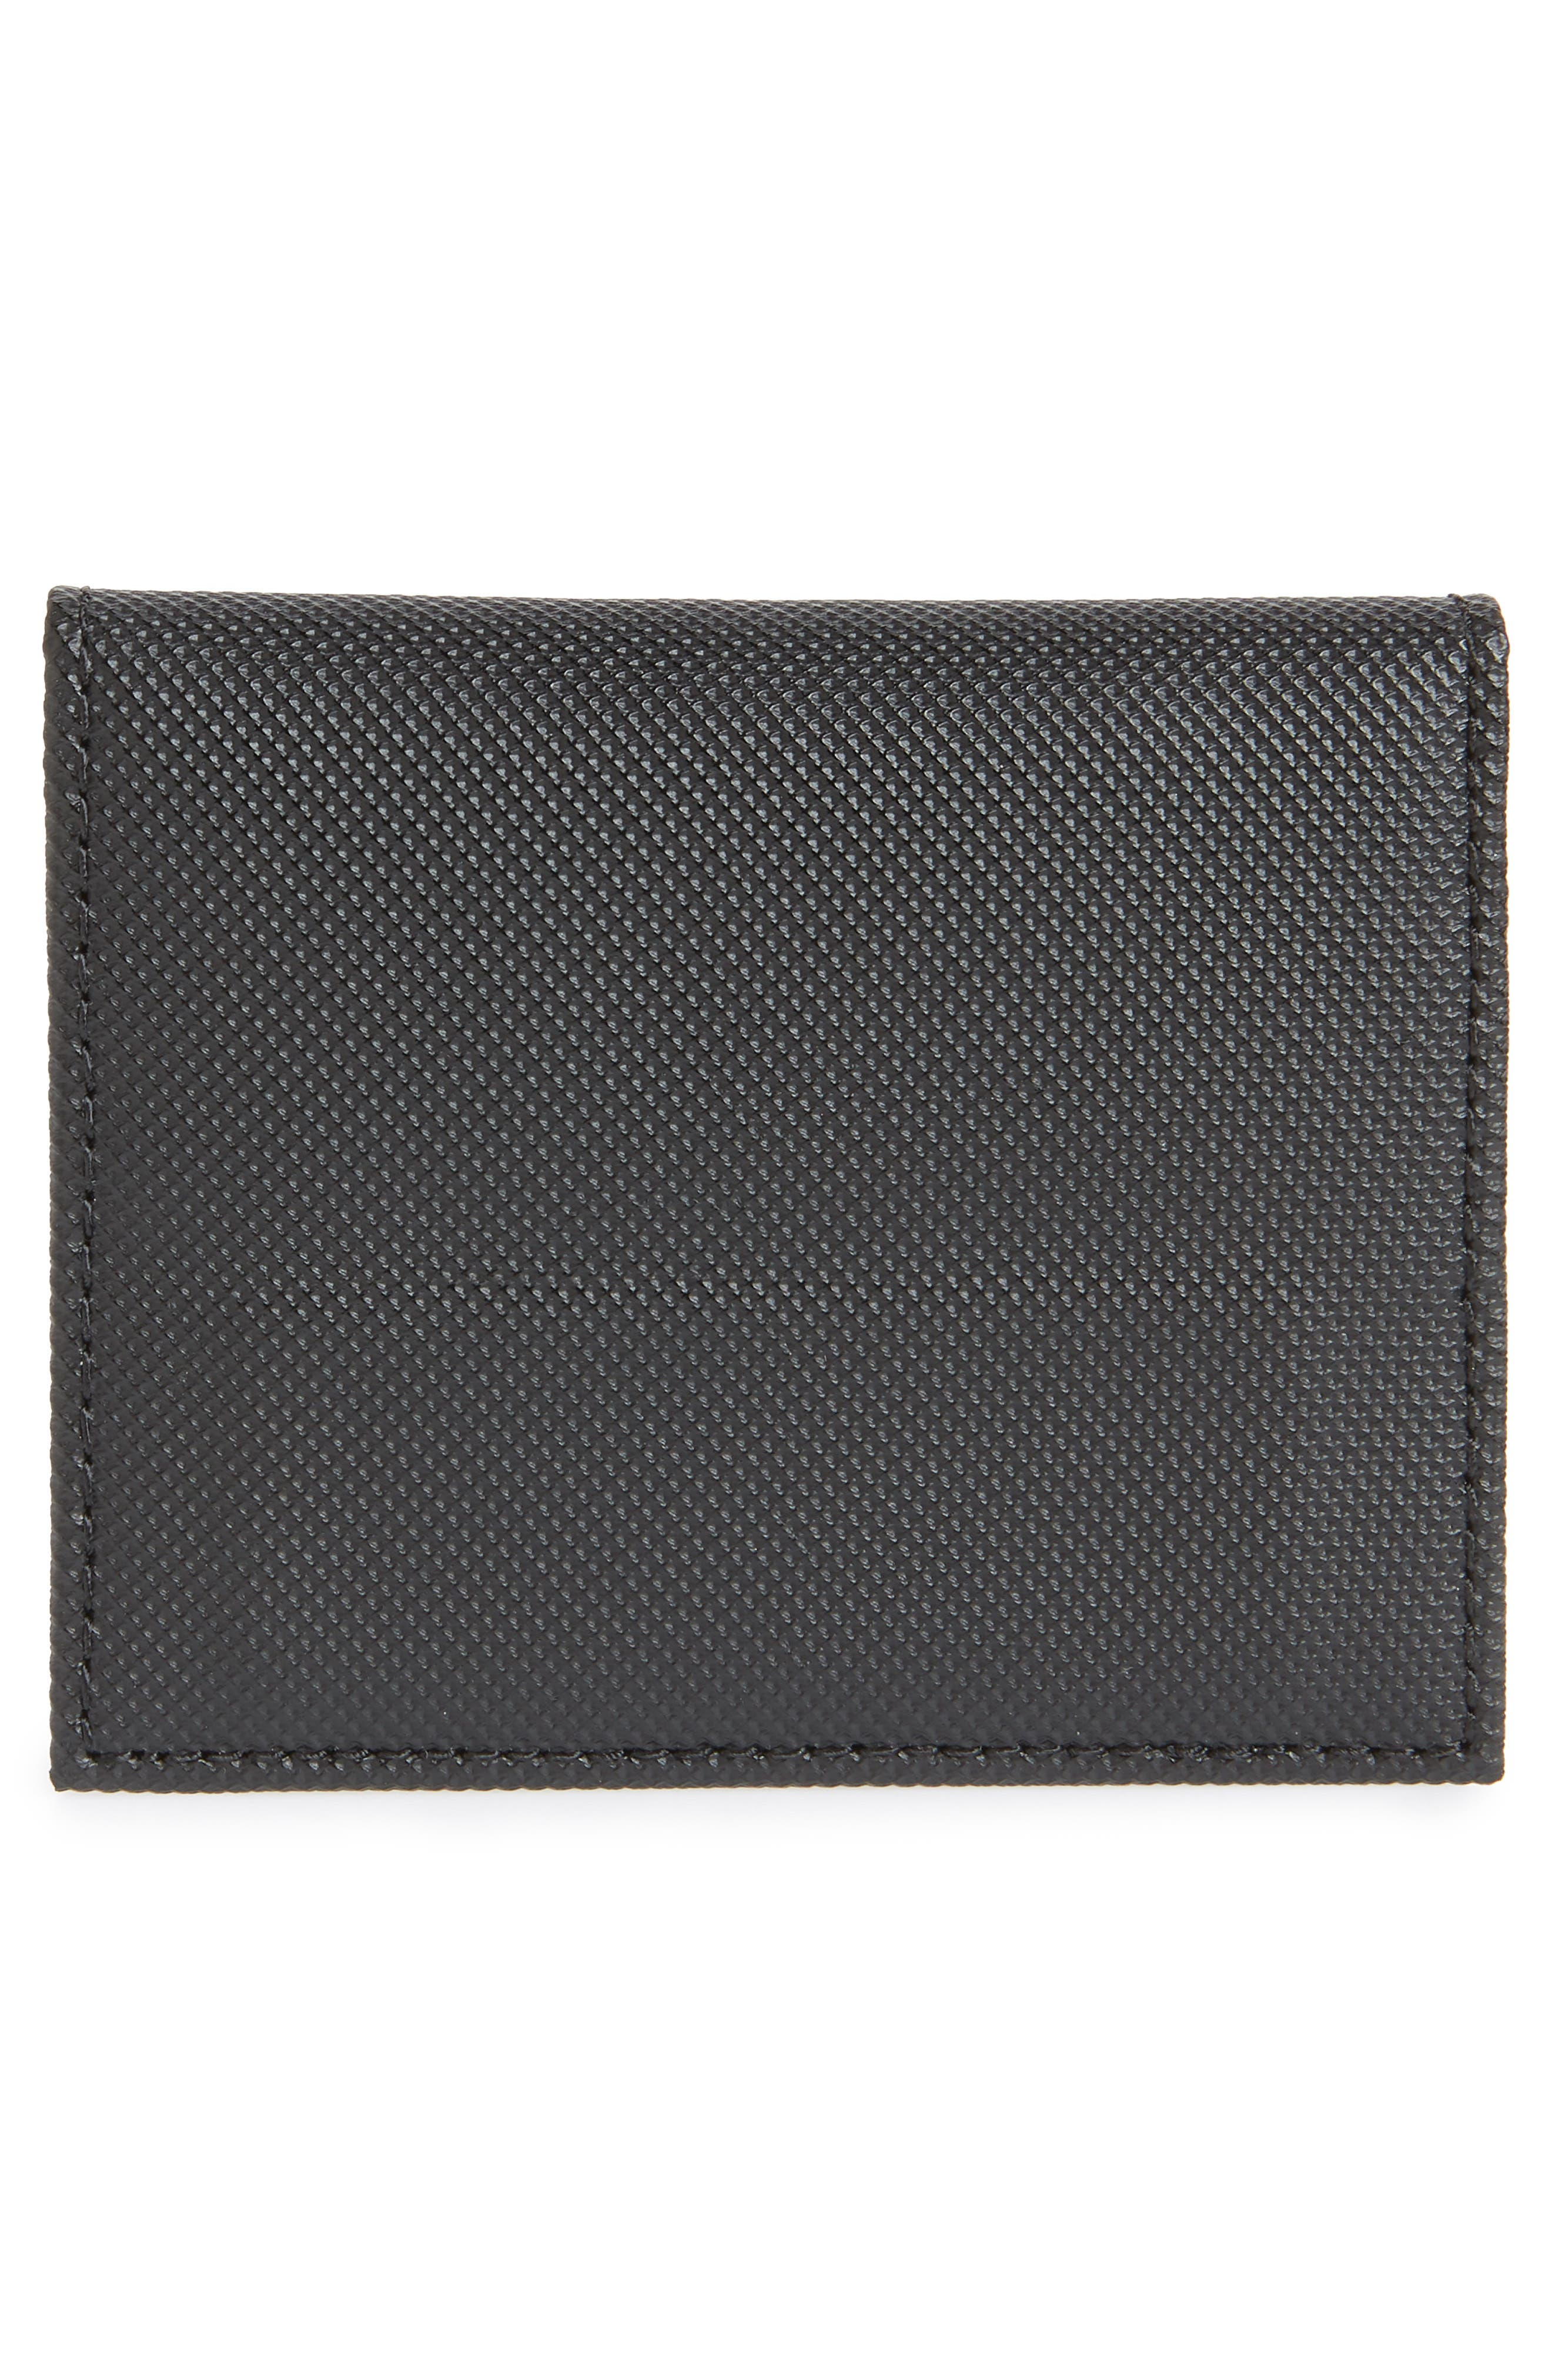 Micro Perforated Leather Bifold Card Holder,                             Alternate thumbnail 3, color,                             001